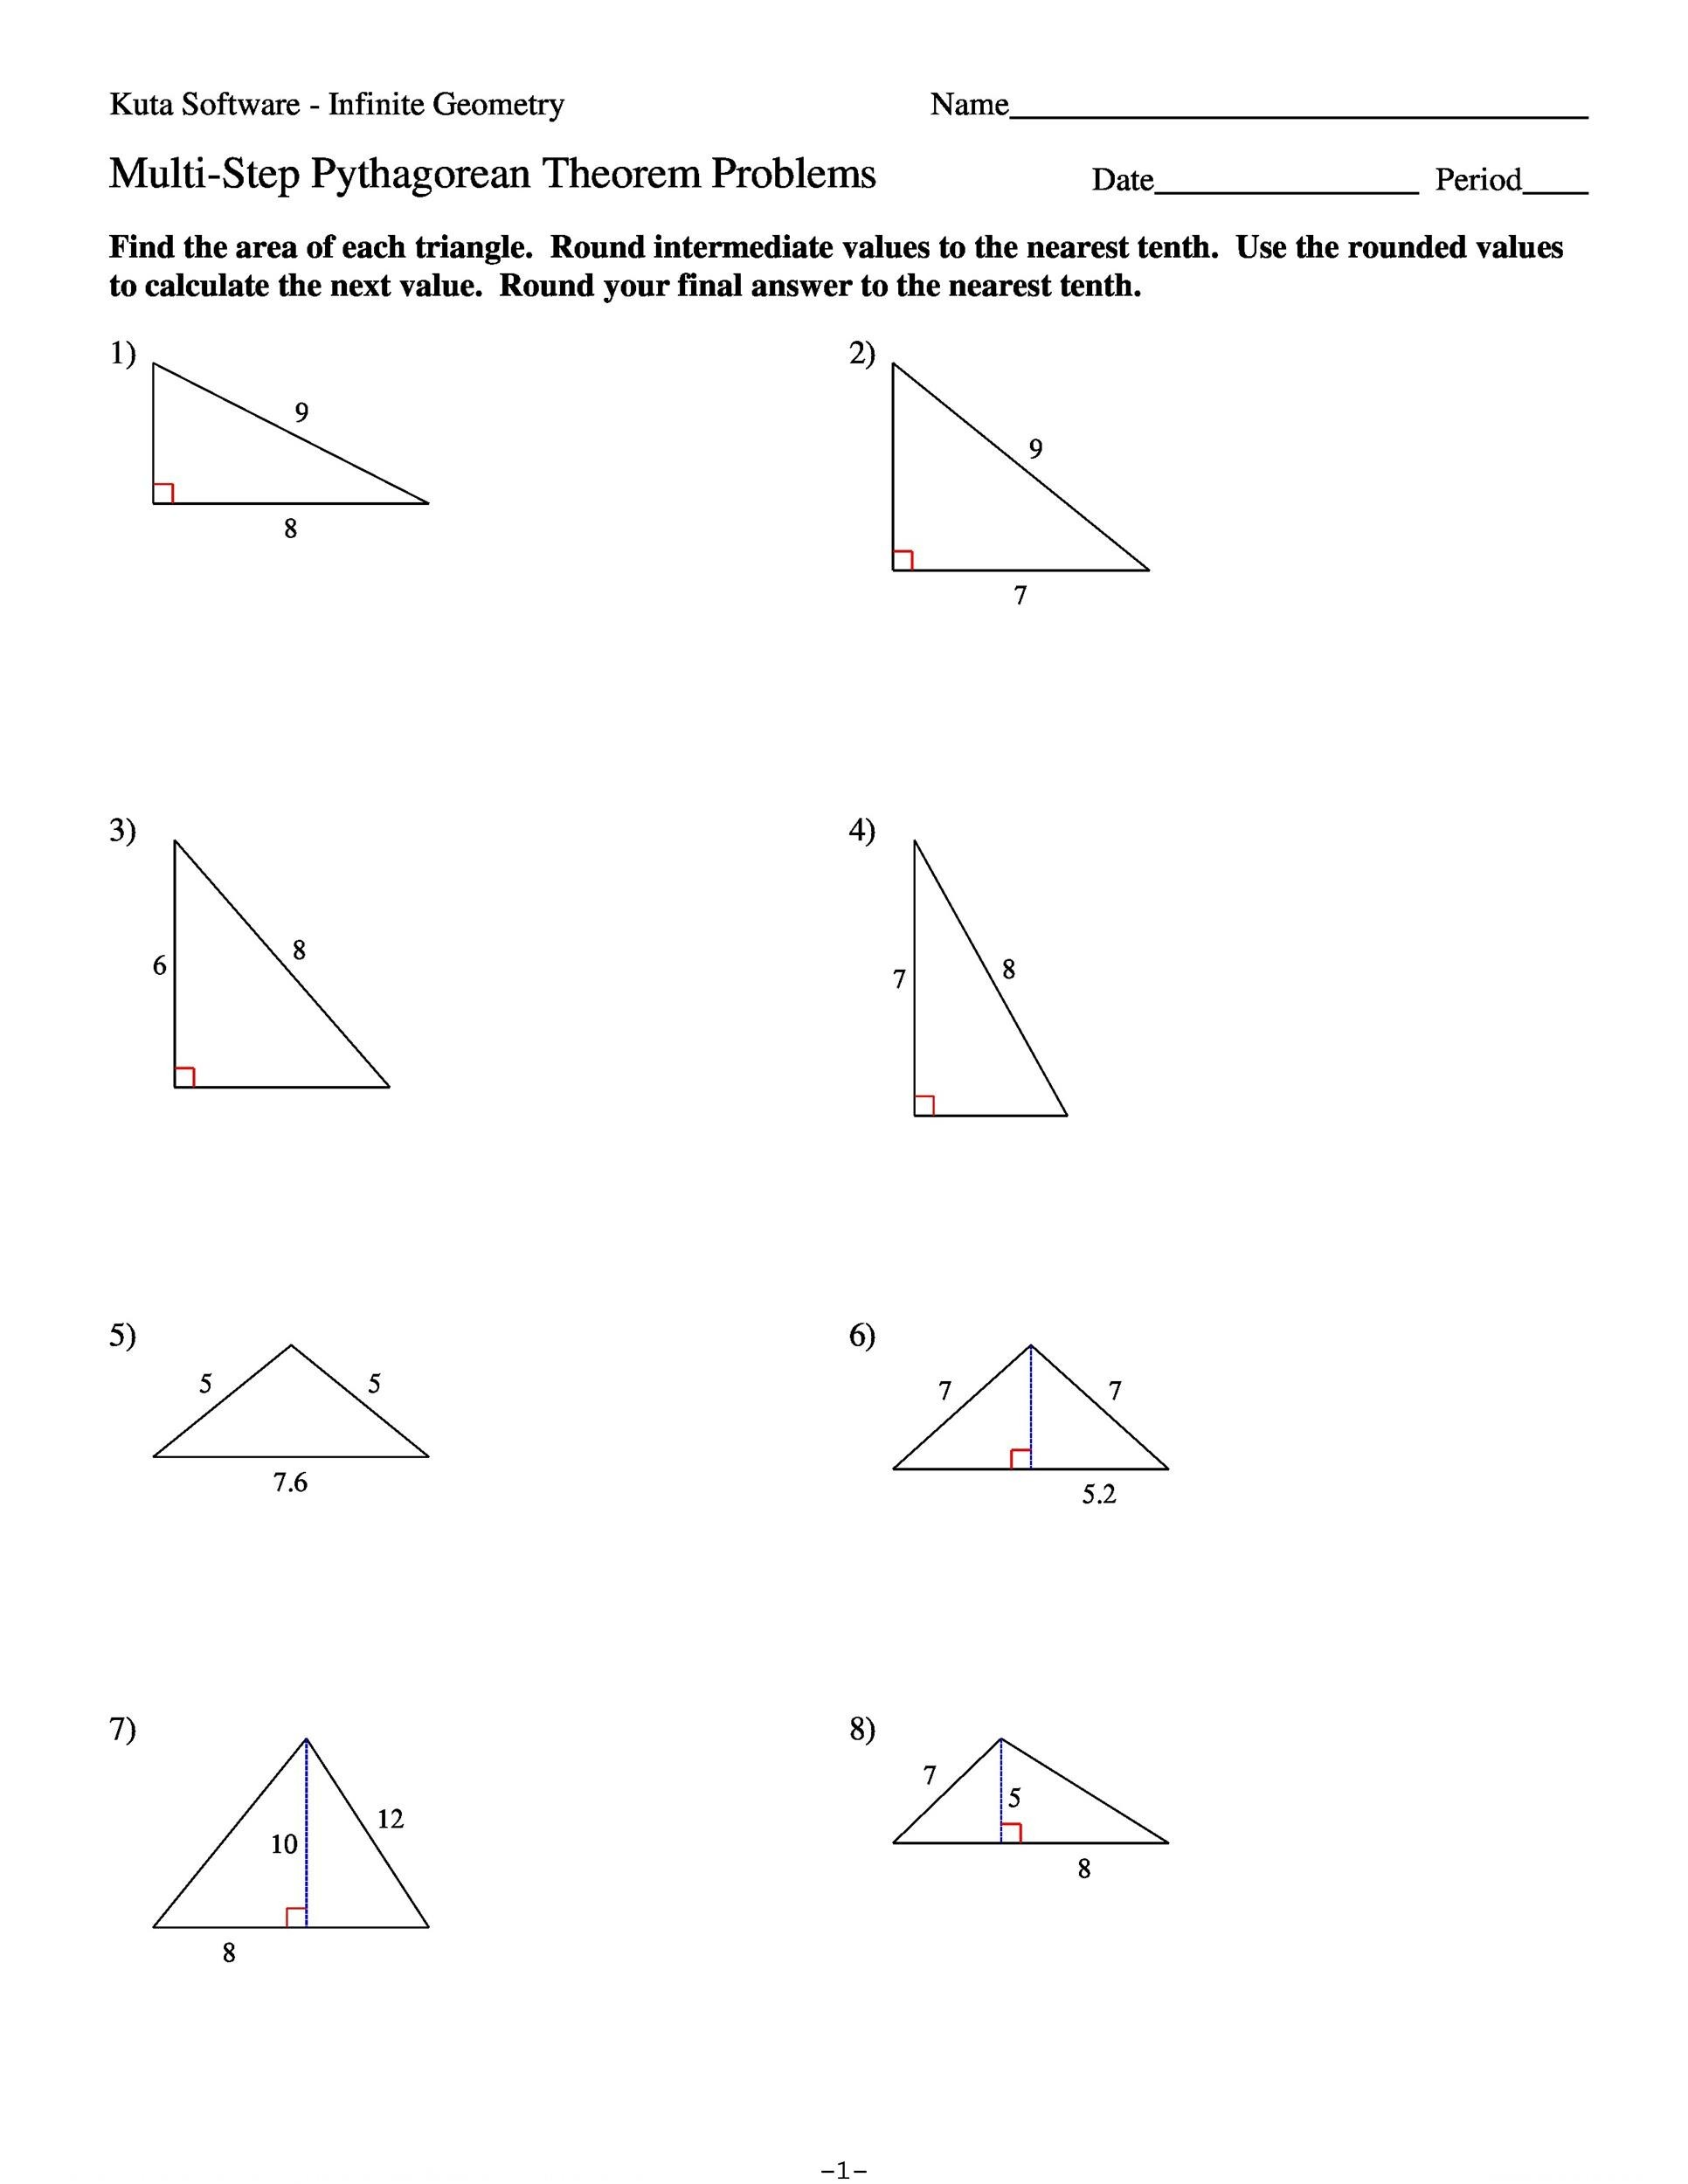 Worksheets Pythagorean Theorem Worksheet Pdf 48 pythagorean theorem worksheet with answers word pdf free 08